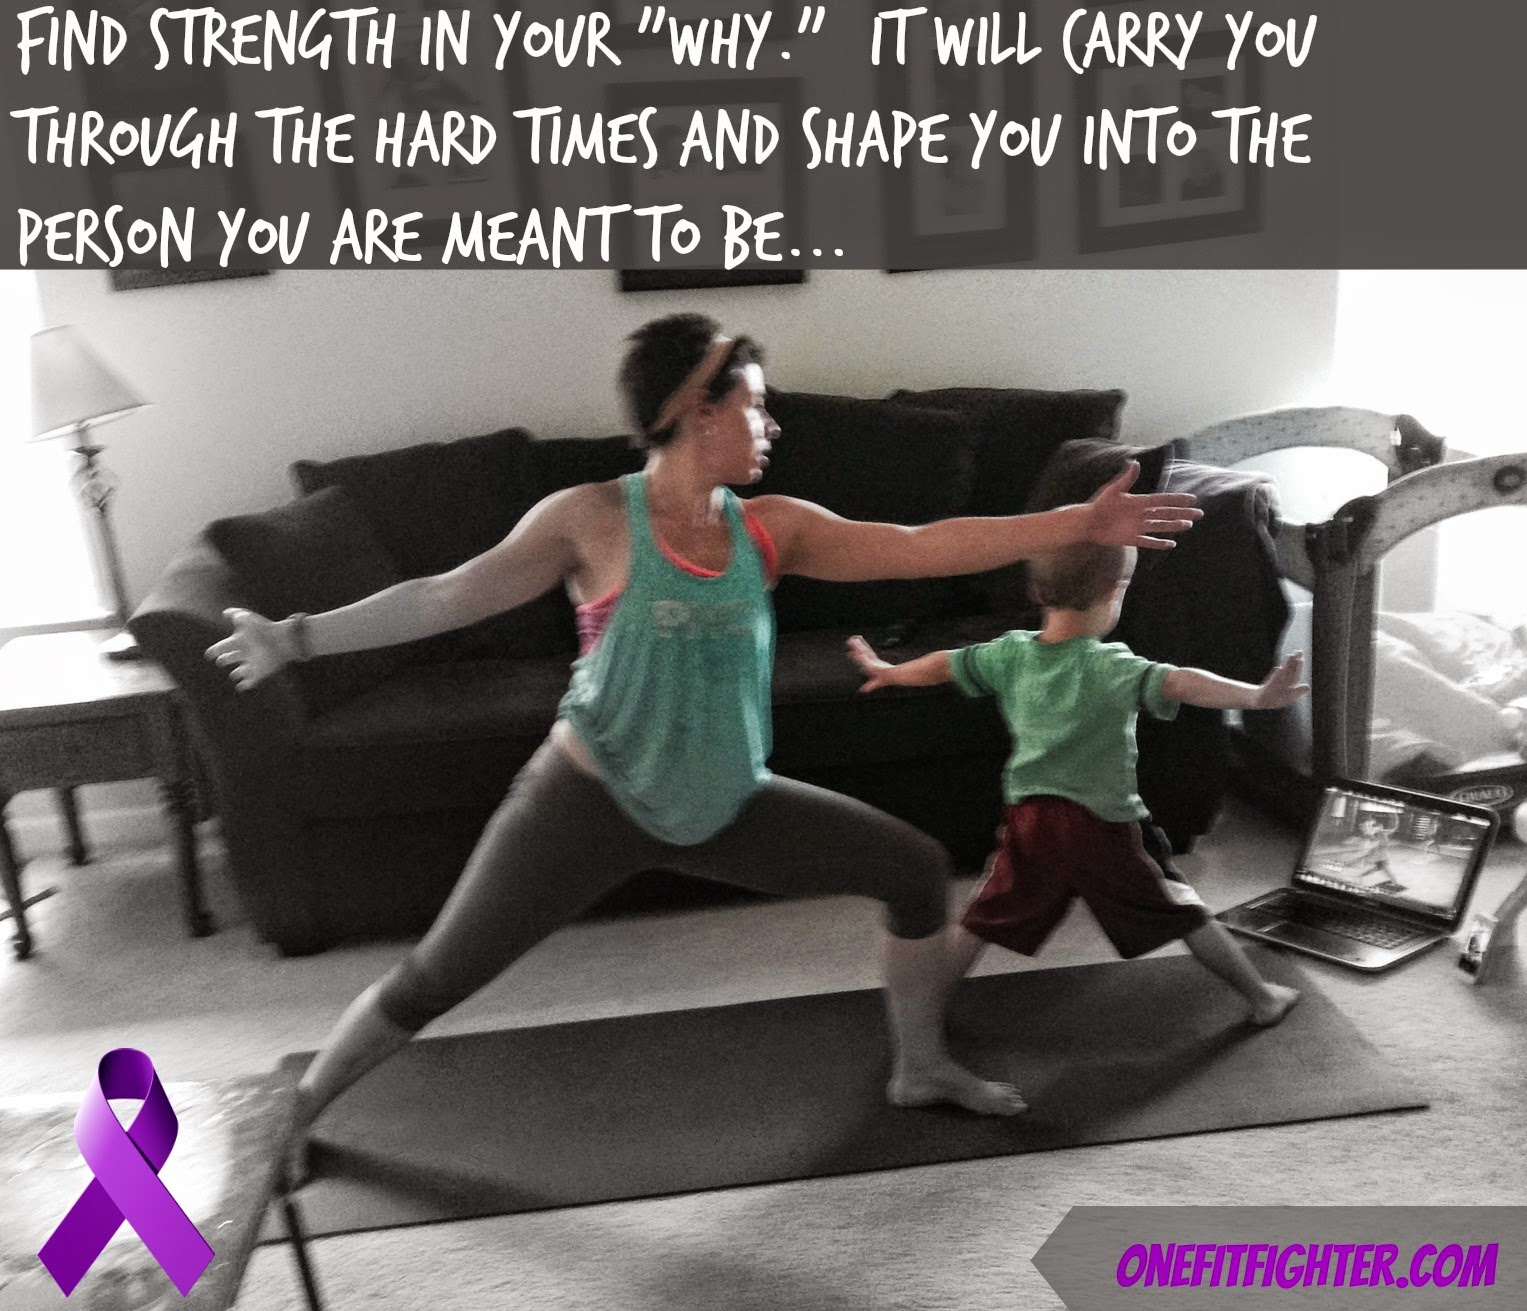 cancer and workouts, healthy living with cancer